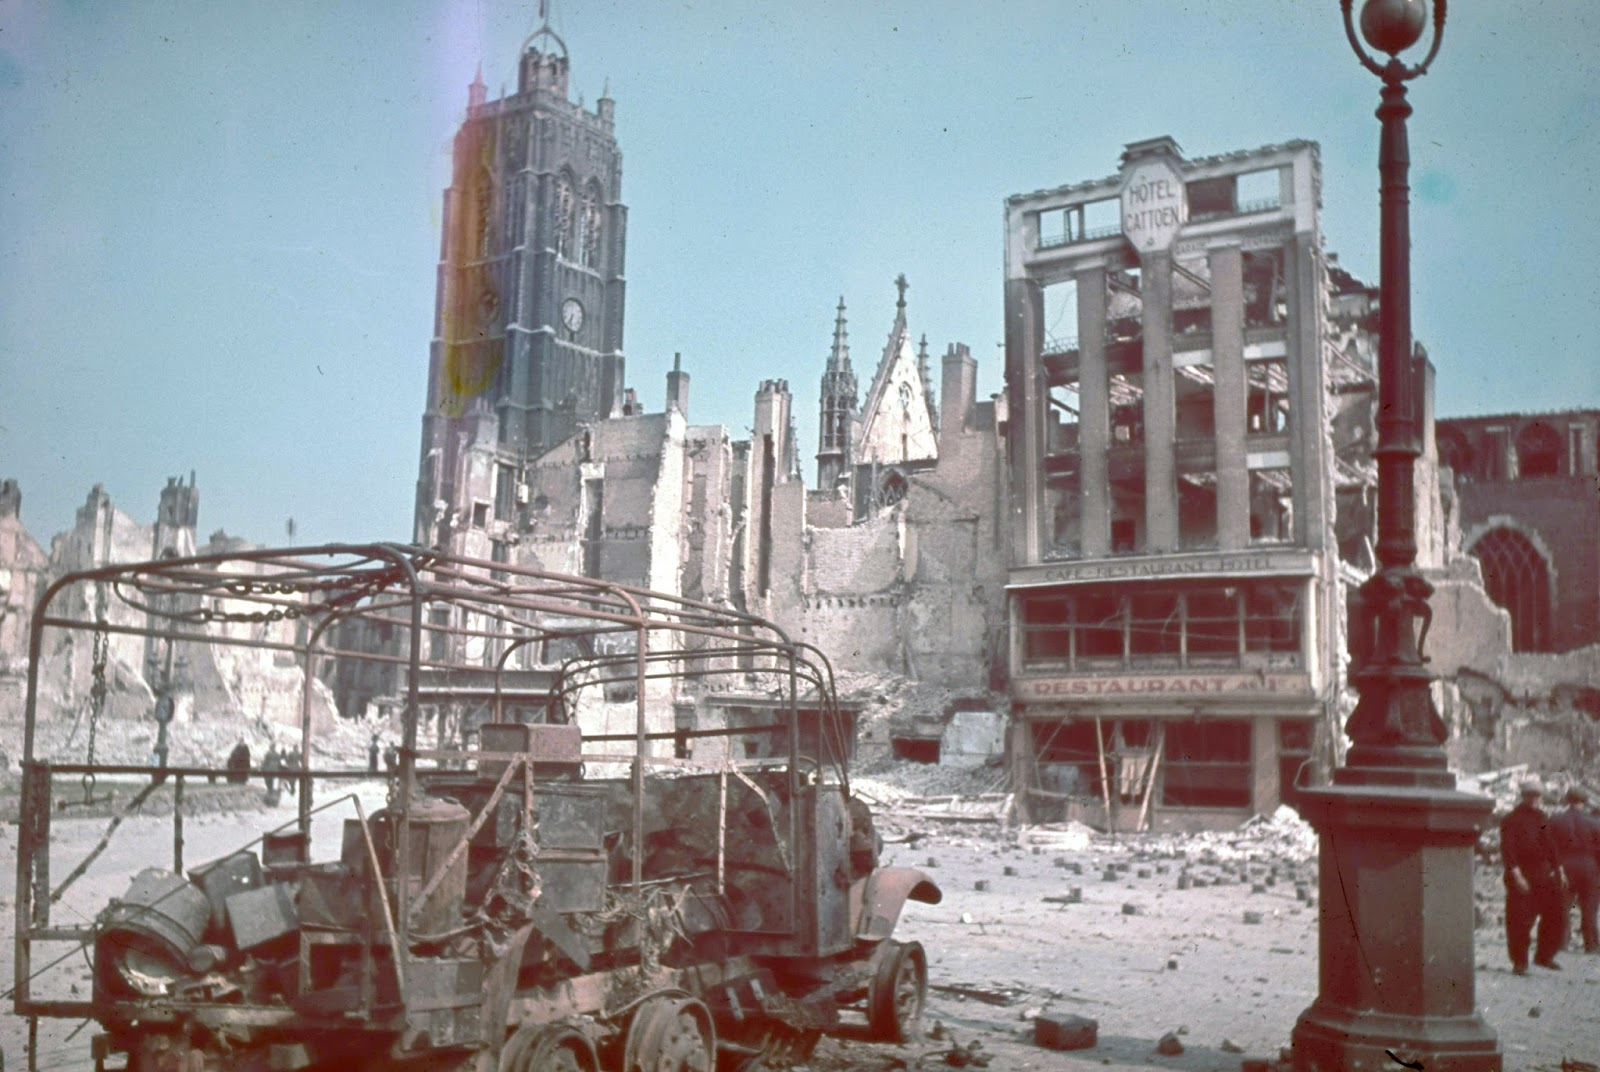 Rarely Seen Color Photographs of the Aftermath of the Battle of Dunkirk in 1940  vintage everyday